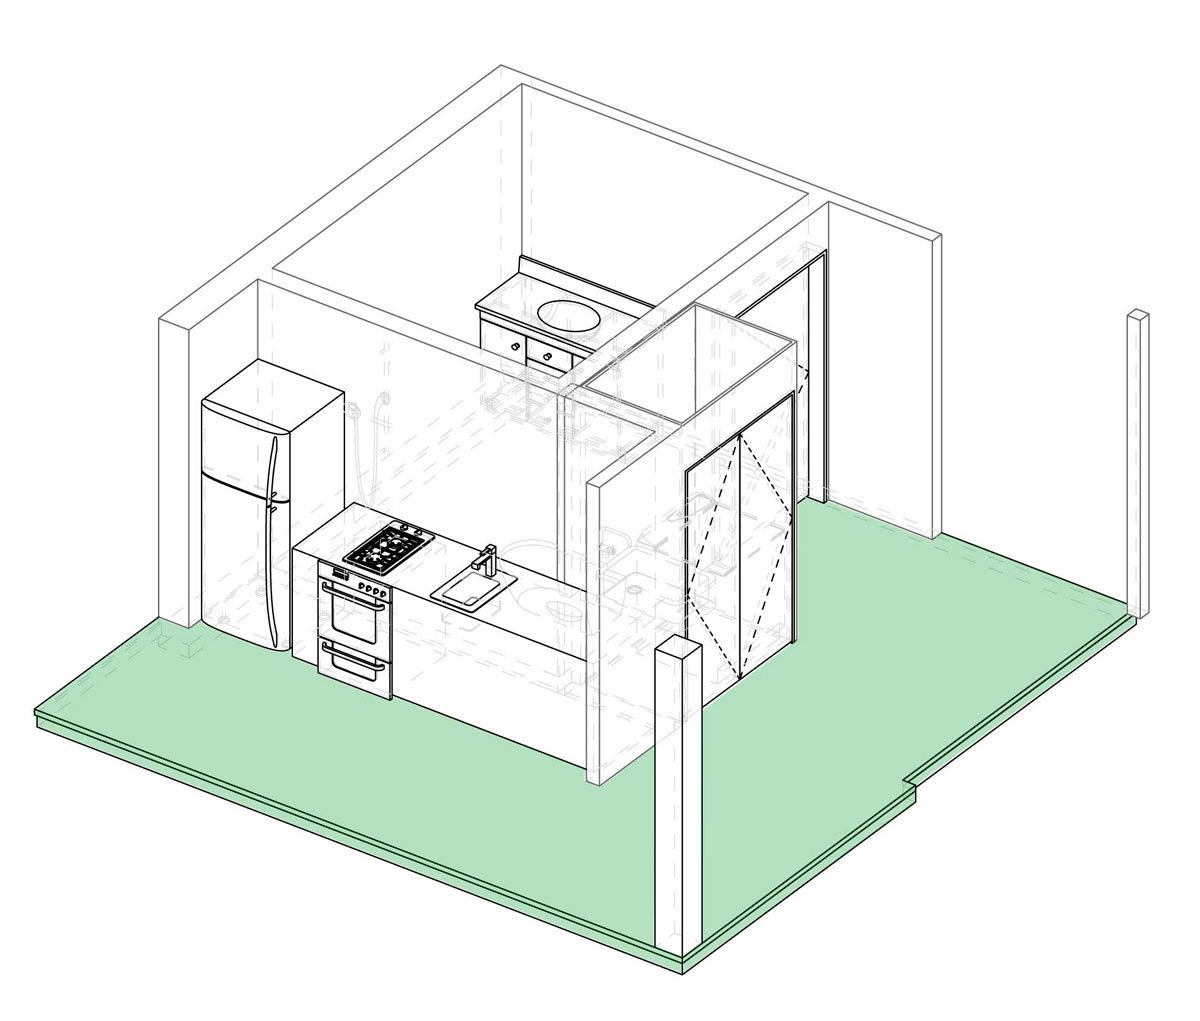 Axonometric projection of service module.